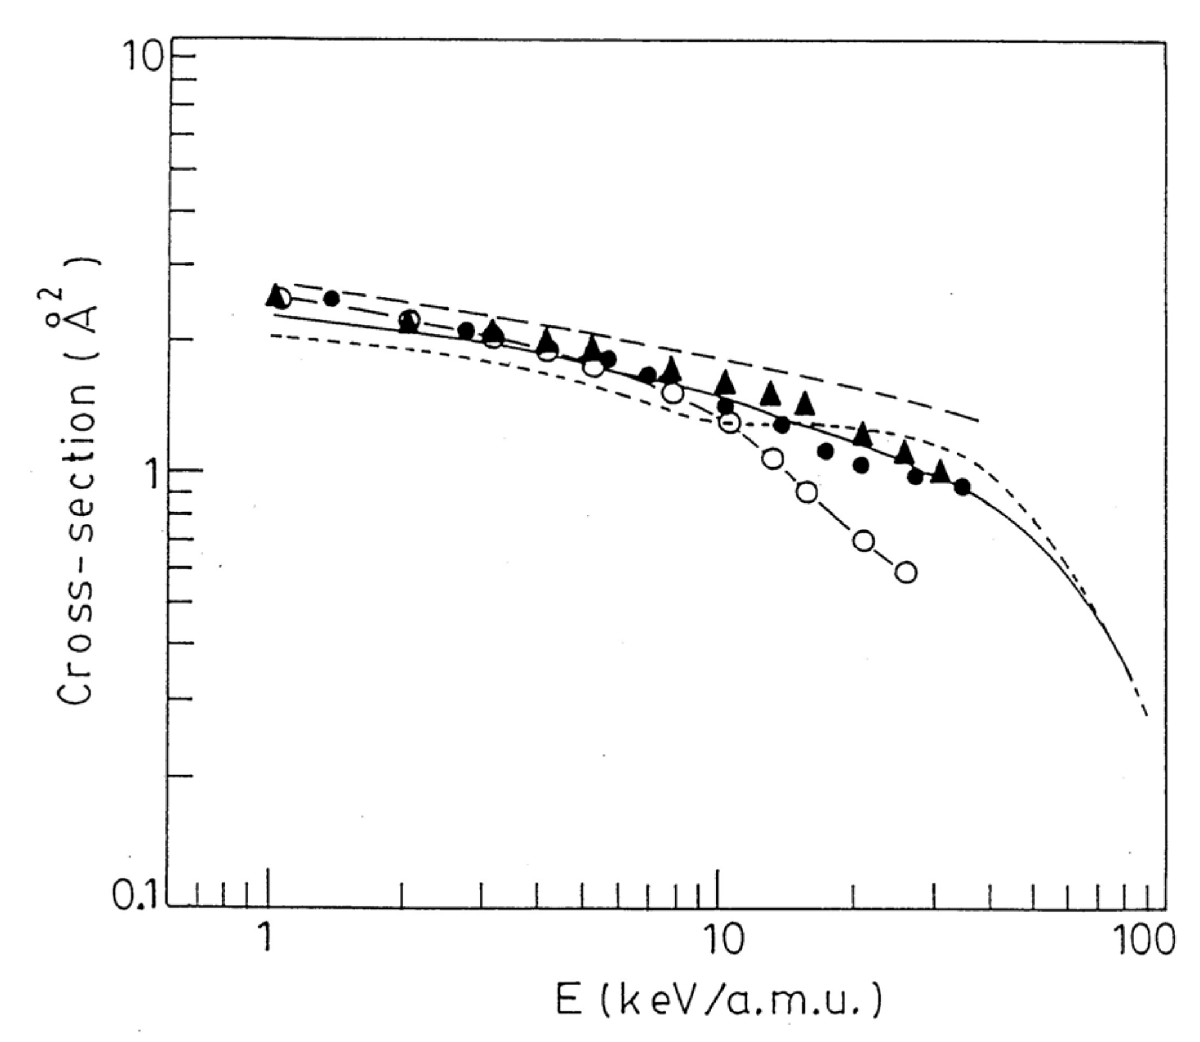 http://static-content.springer.com/image/art%3A10.1186%2F1754-0429-2-2/MediaObjects/13067_2009_Article_22_Fig4_HTML.jpg